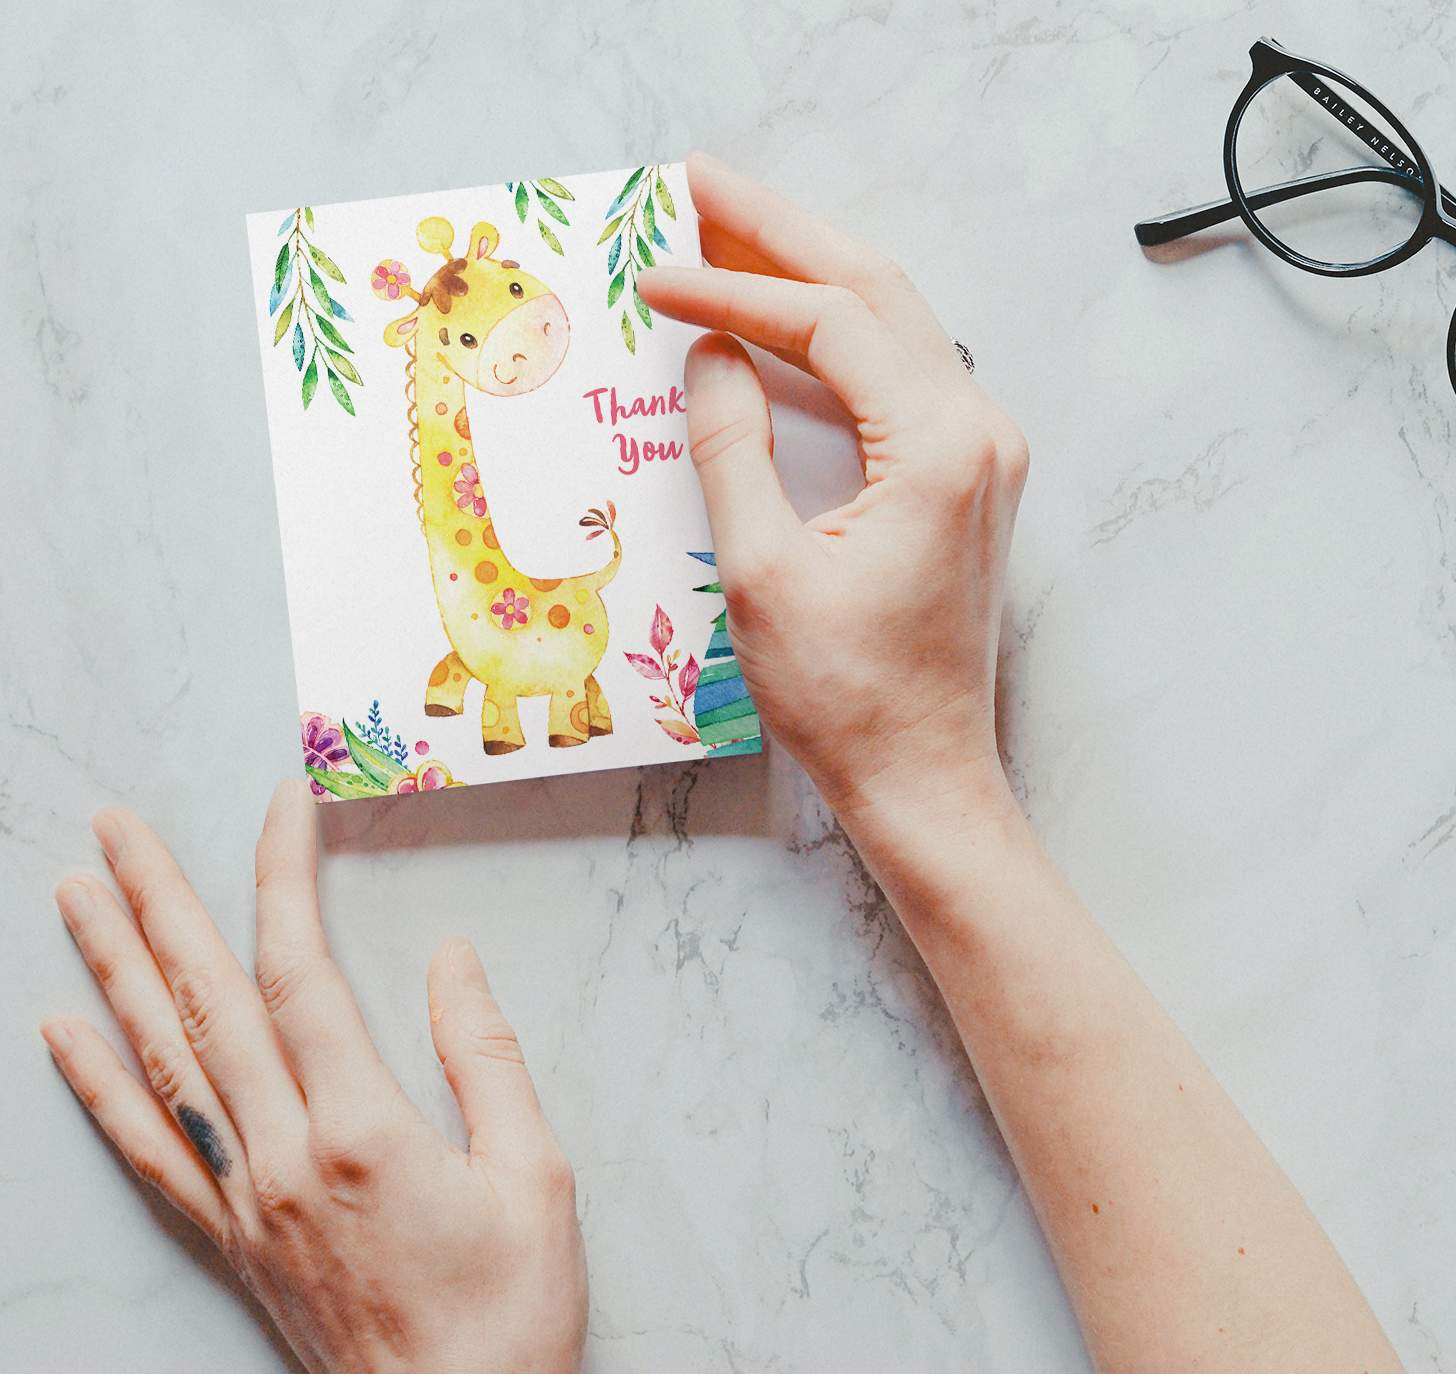 Woman's hands holding card with a cute yellow giraffe and plants design on a marble background